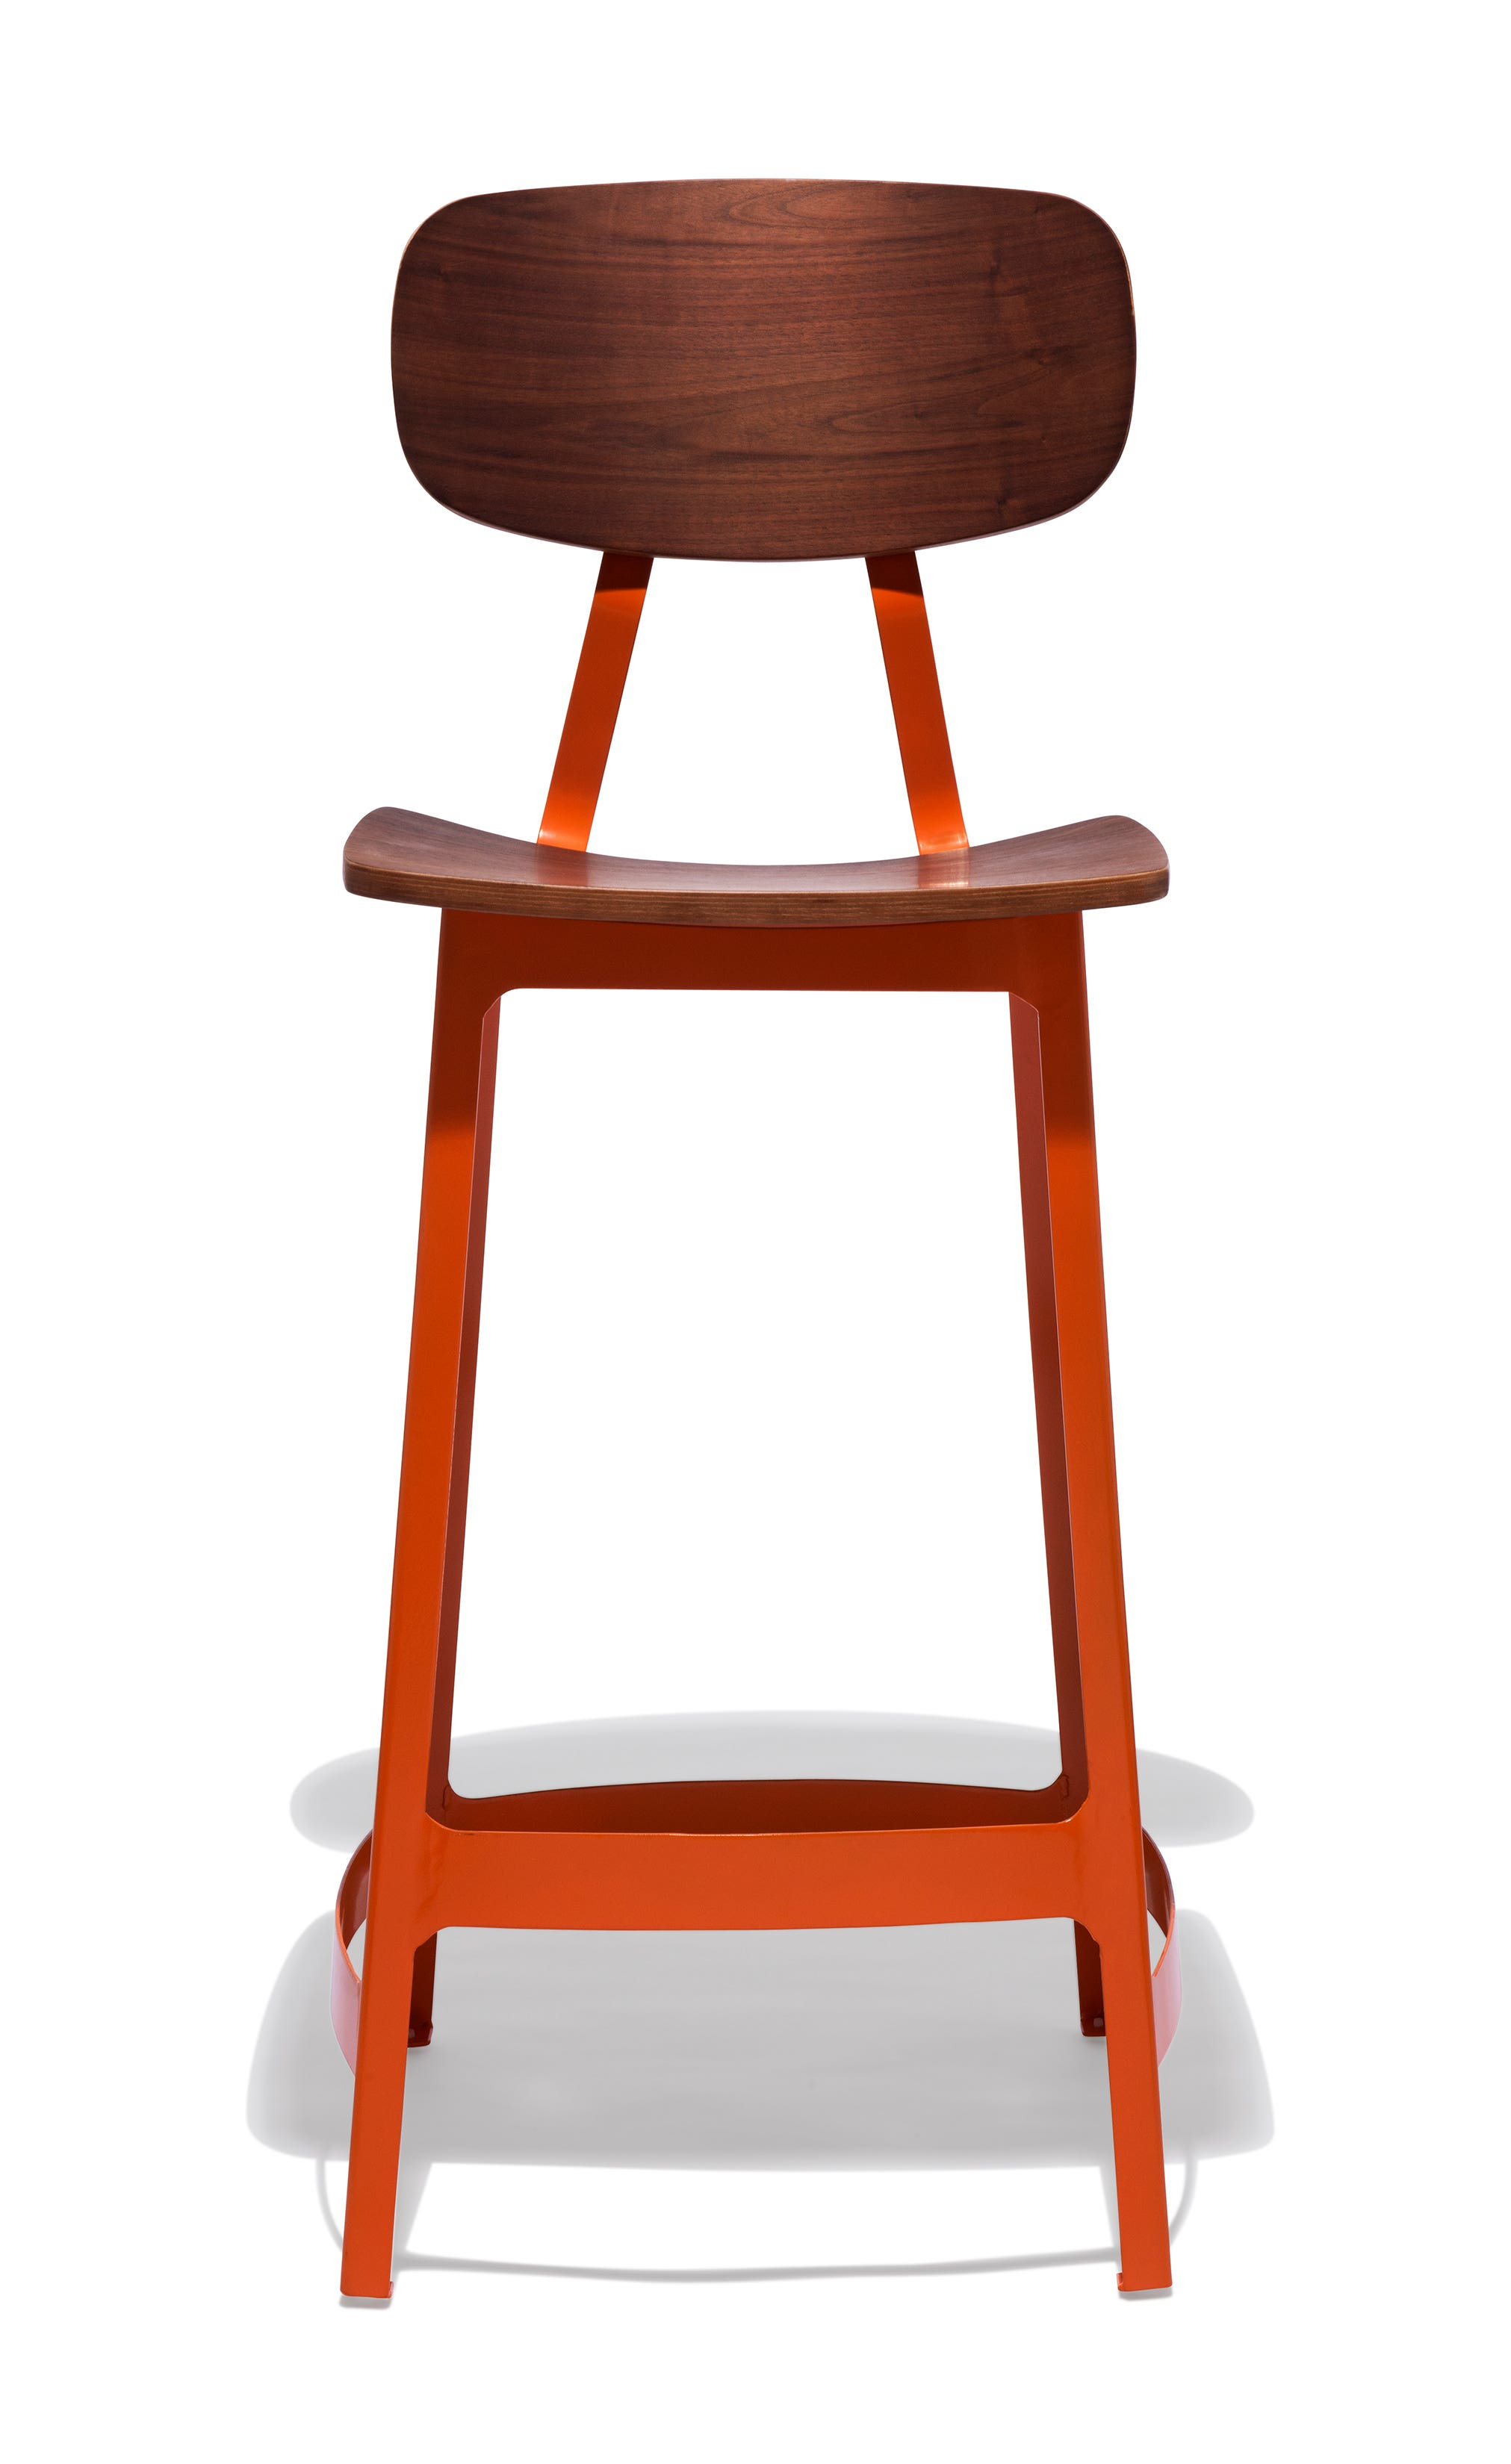 Commercial bar counter and pub stools industrial modern for Orange bar stools ikea